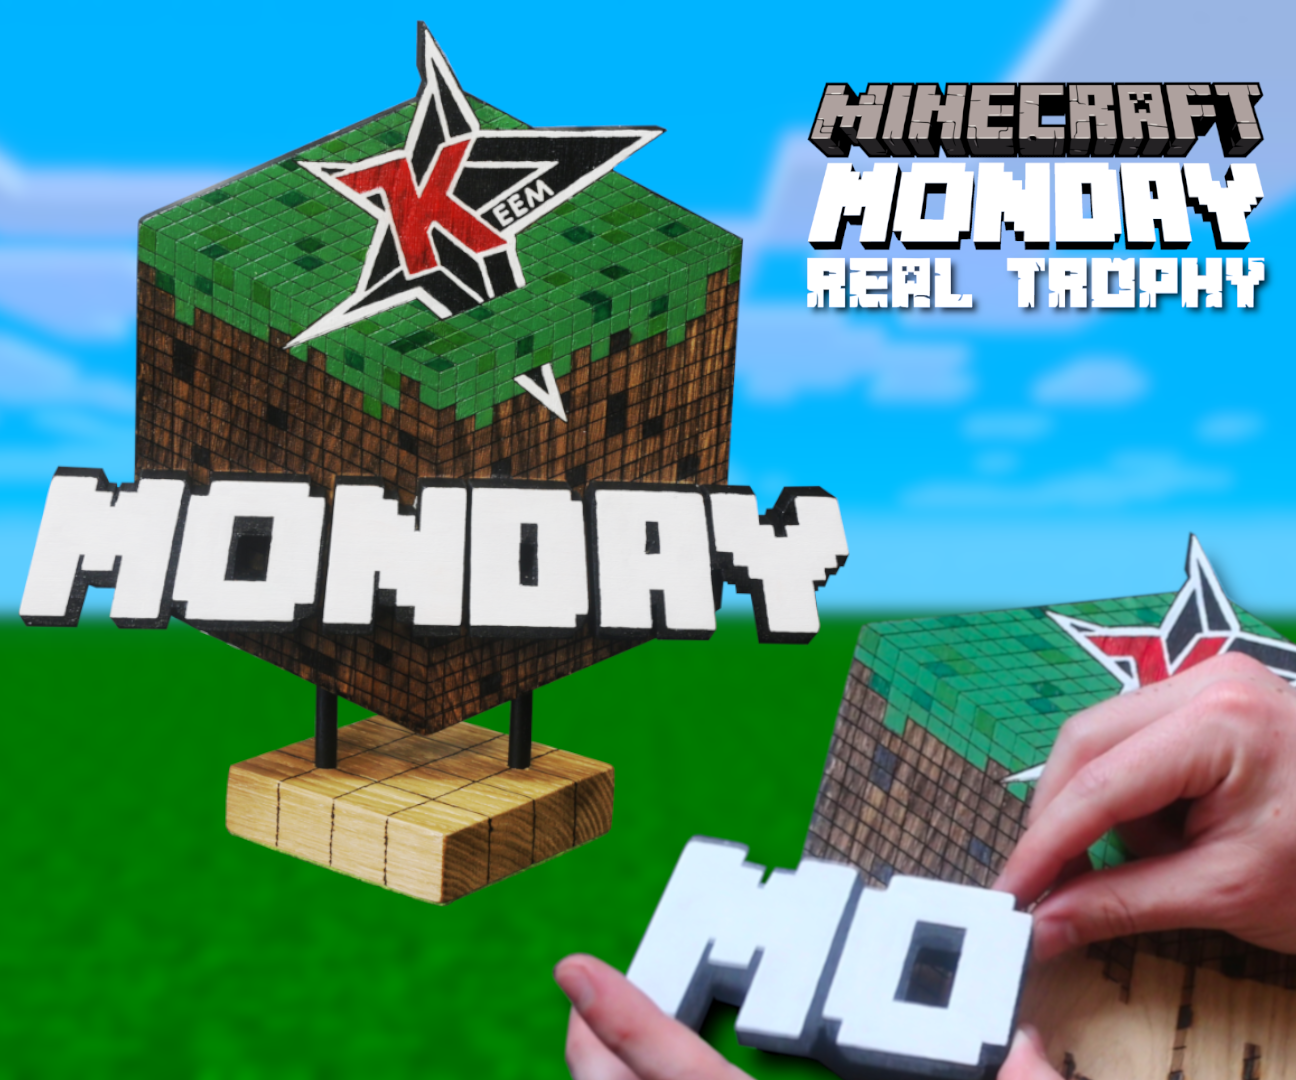 The Minecraft Monday Trophy